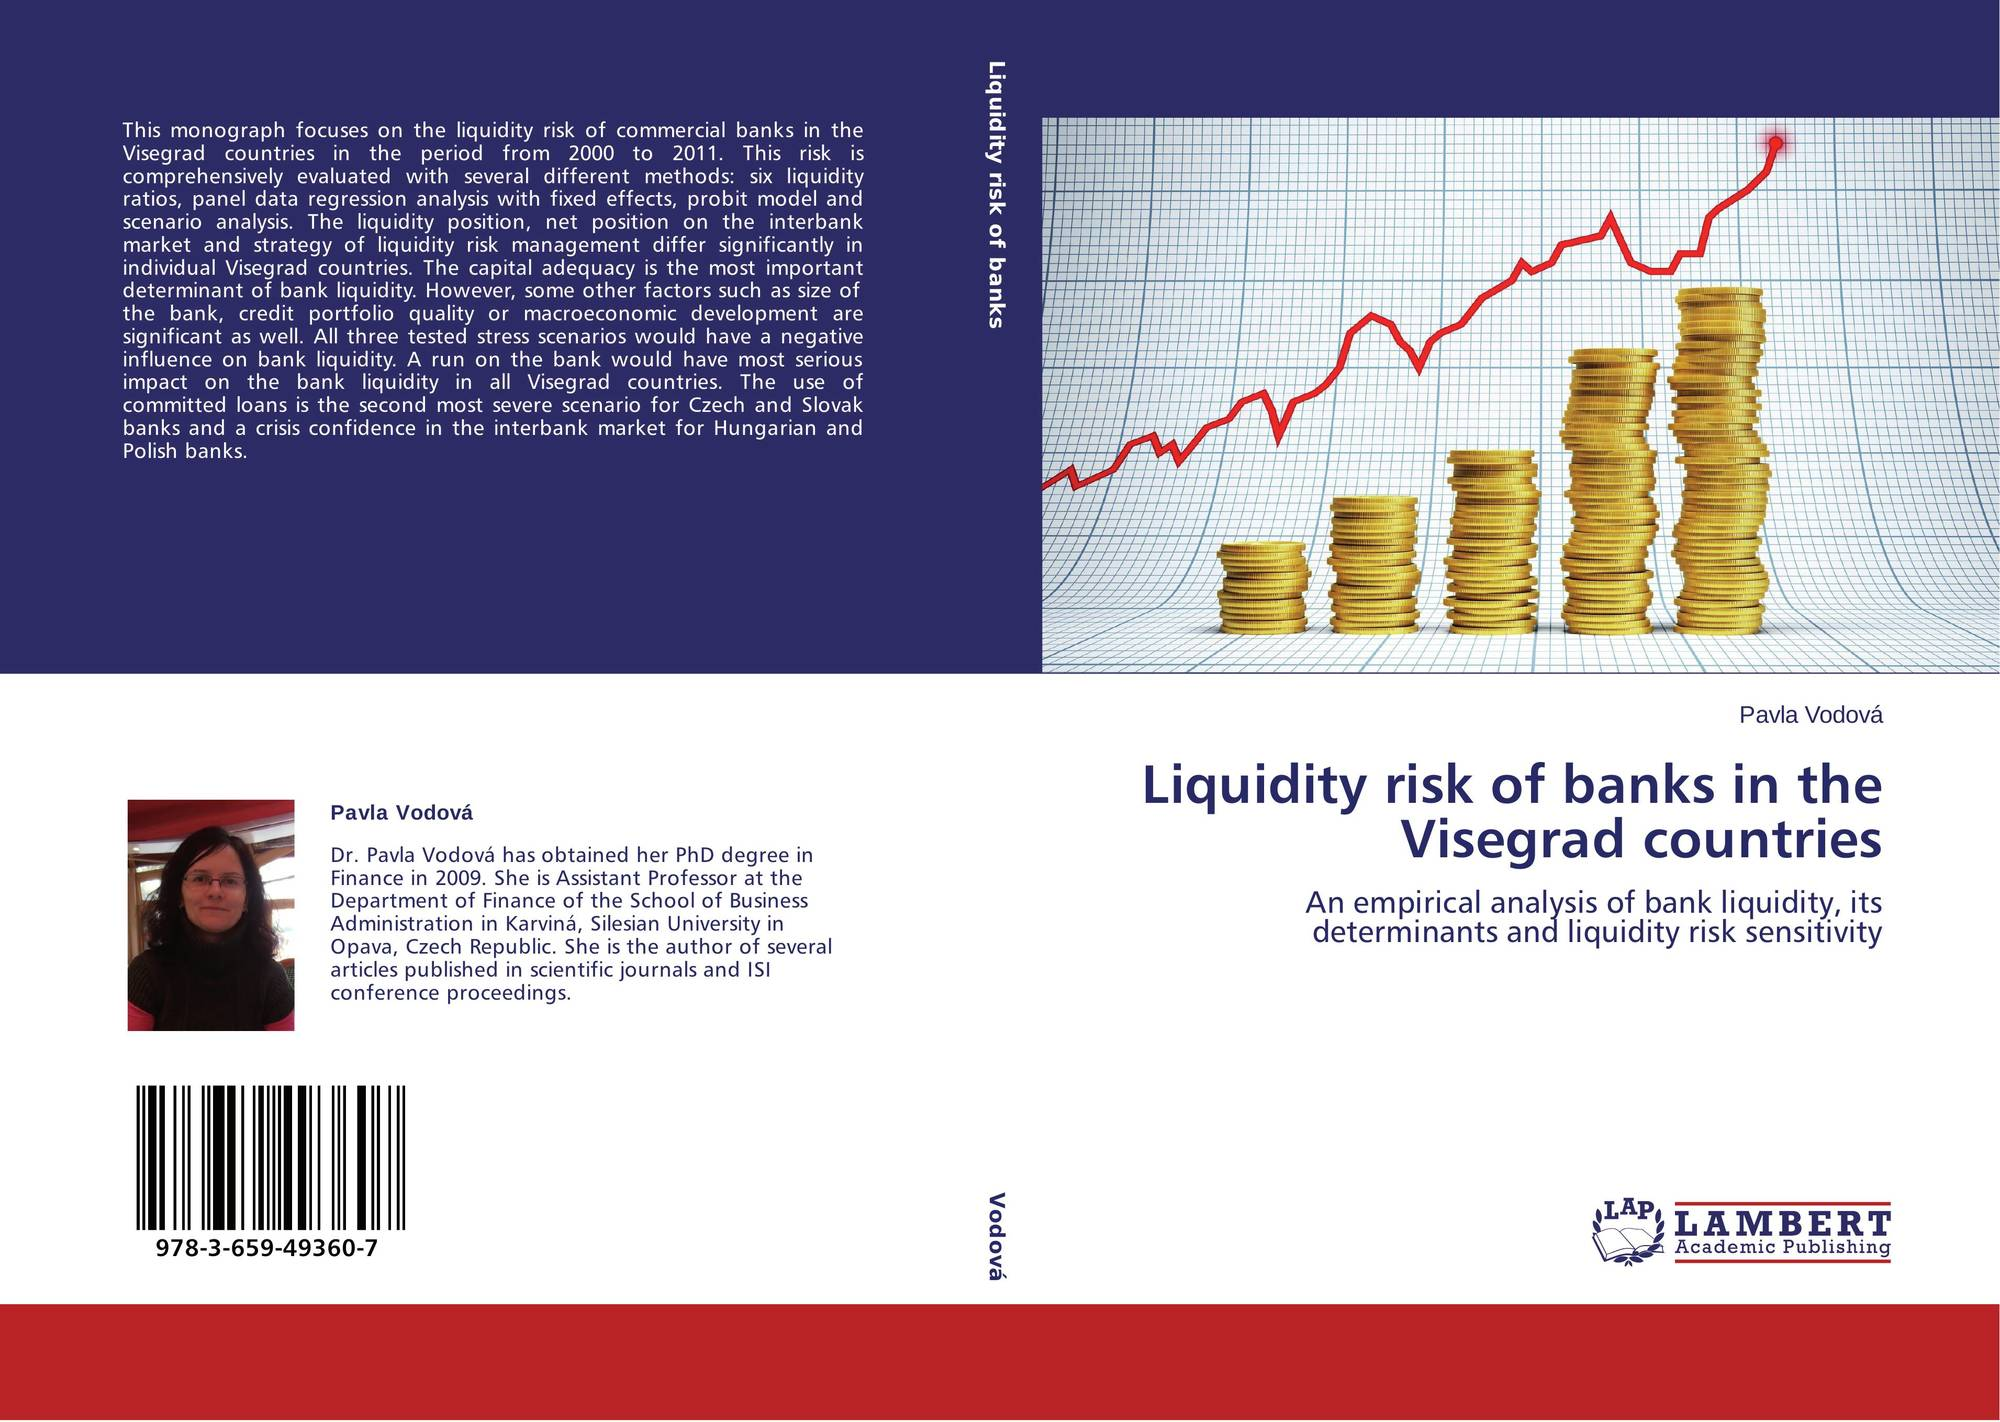 primary data analysis on commercial banks liquidity position However, for data analysis, descriptive statistics together with linear regression  tests were applied findings indicated that ugandan commercial banks are in  liquidity crisis,  ratios are falling short of the bank of uganda's threshold ratio of  20%  primary data sources included the respondents who filled in the.